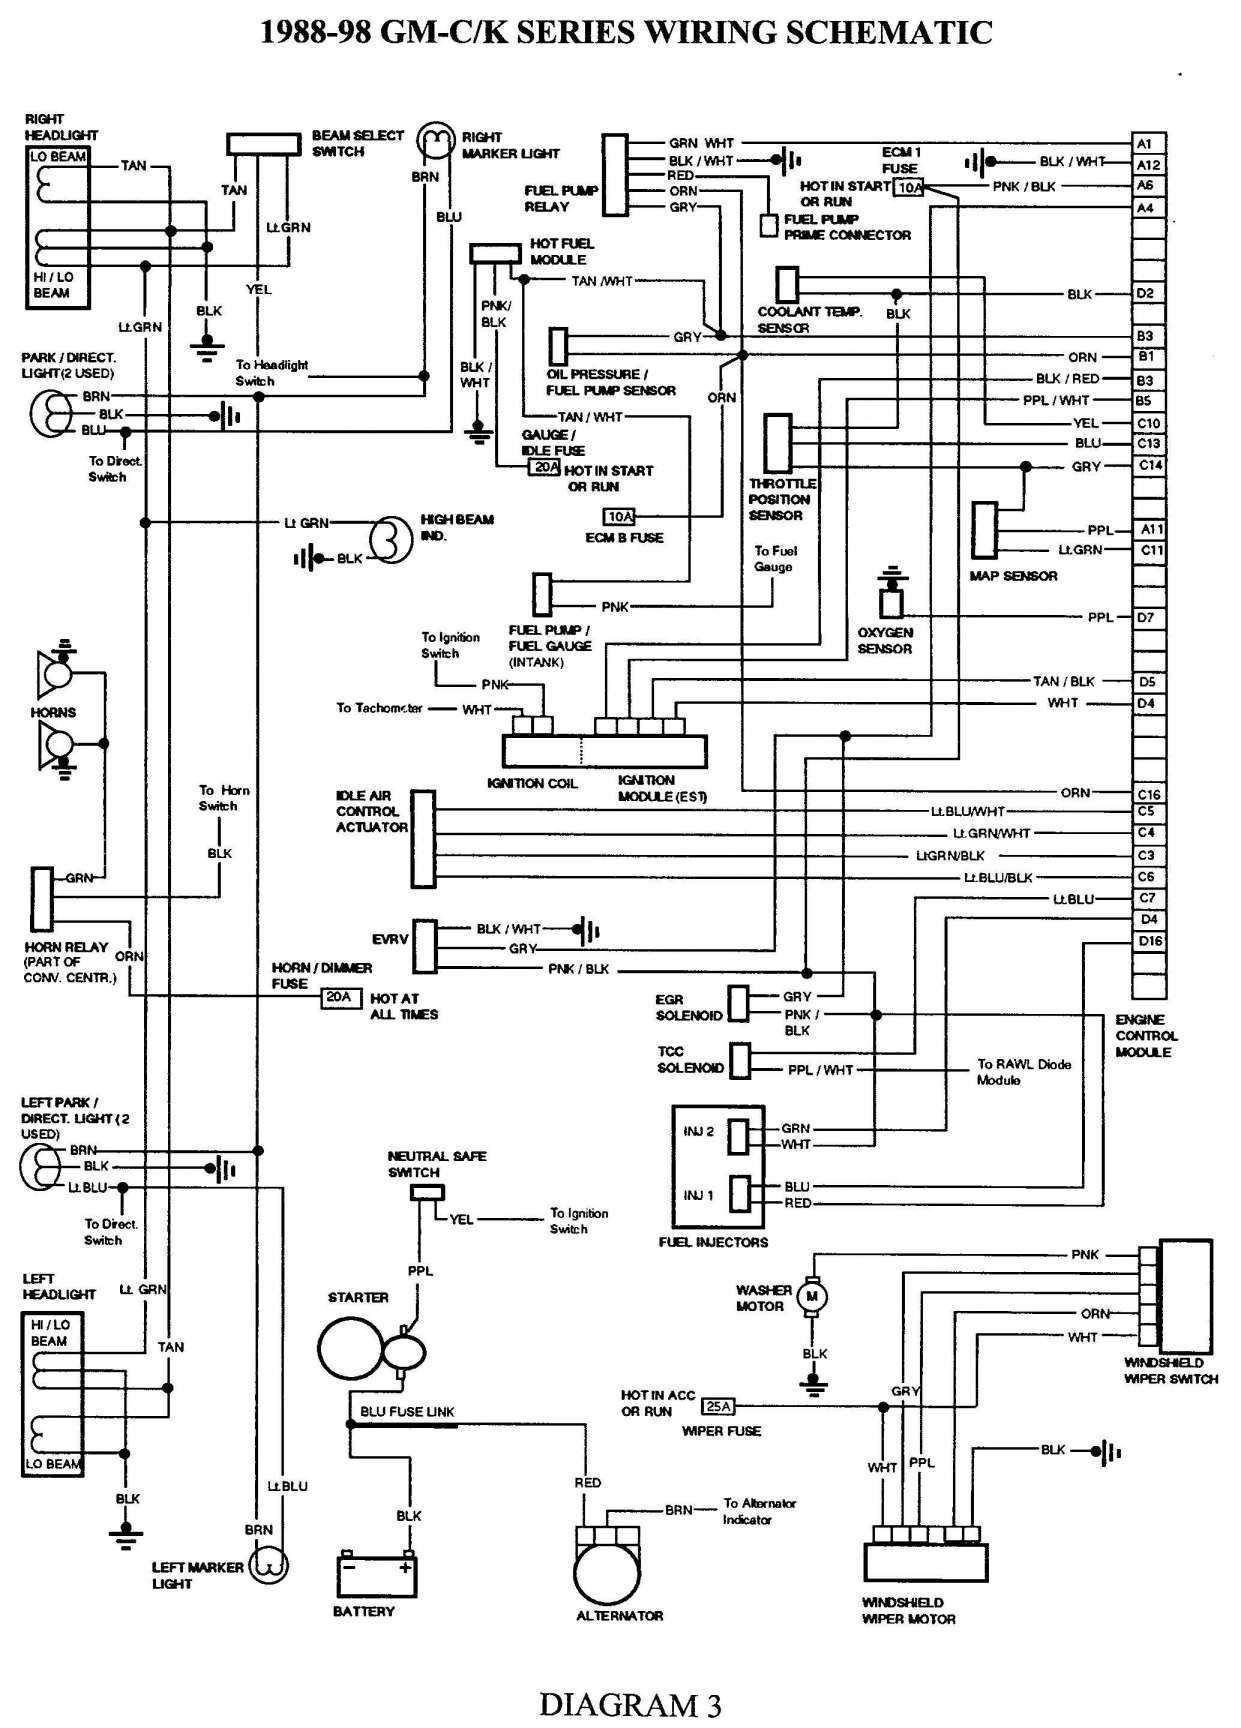 1993 Chevy Truck Wiring Schematic Electrical Diagram Chevy 1500 Electrical Wiring Diagram